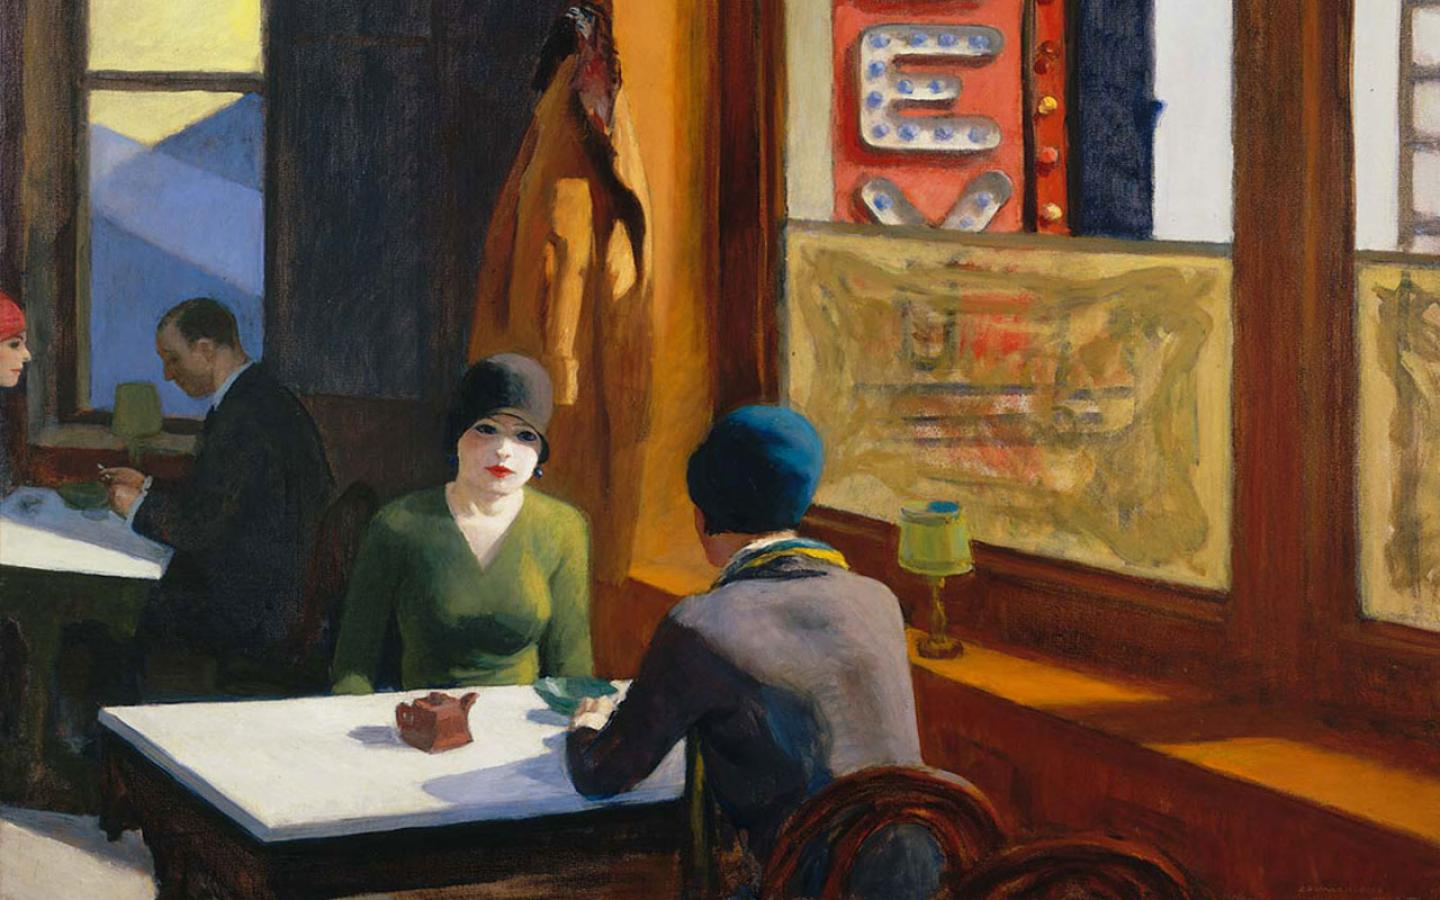 edward hopper story painting essay The art storyorg - your guide to documentary photographer larry sultan was taken with edward hopper's paintings tate papers 2012 the new york times: edward.